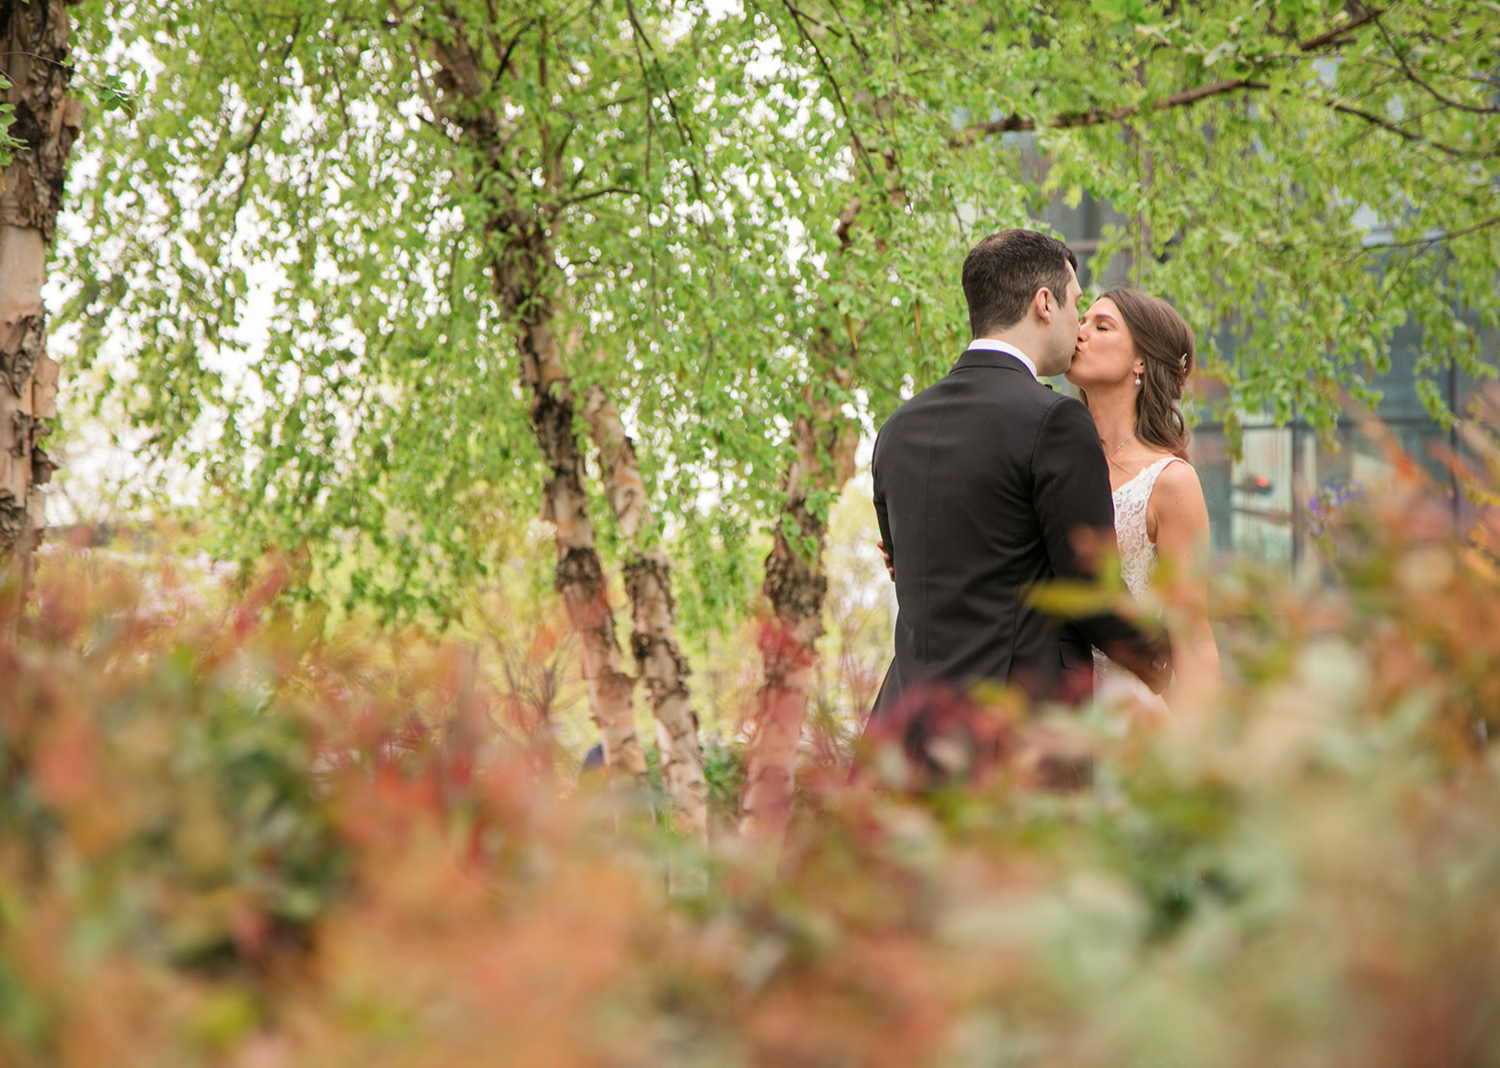 bride and groom share a kiss in a park in Baltimore